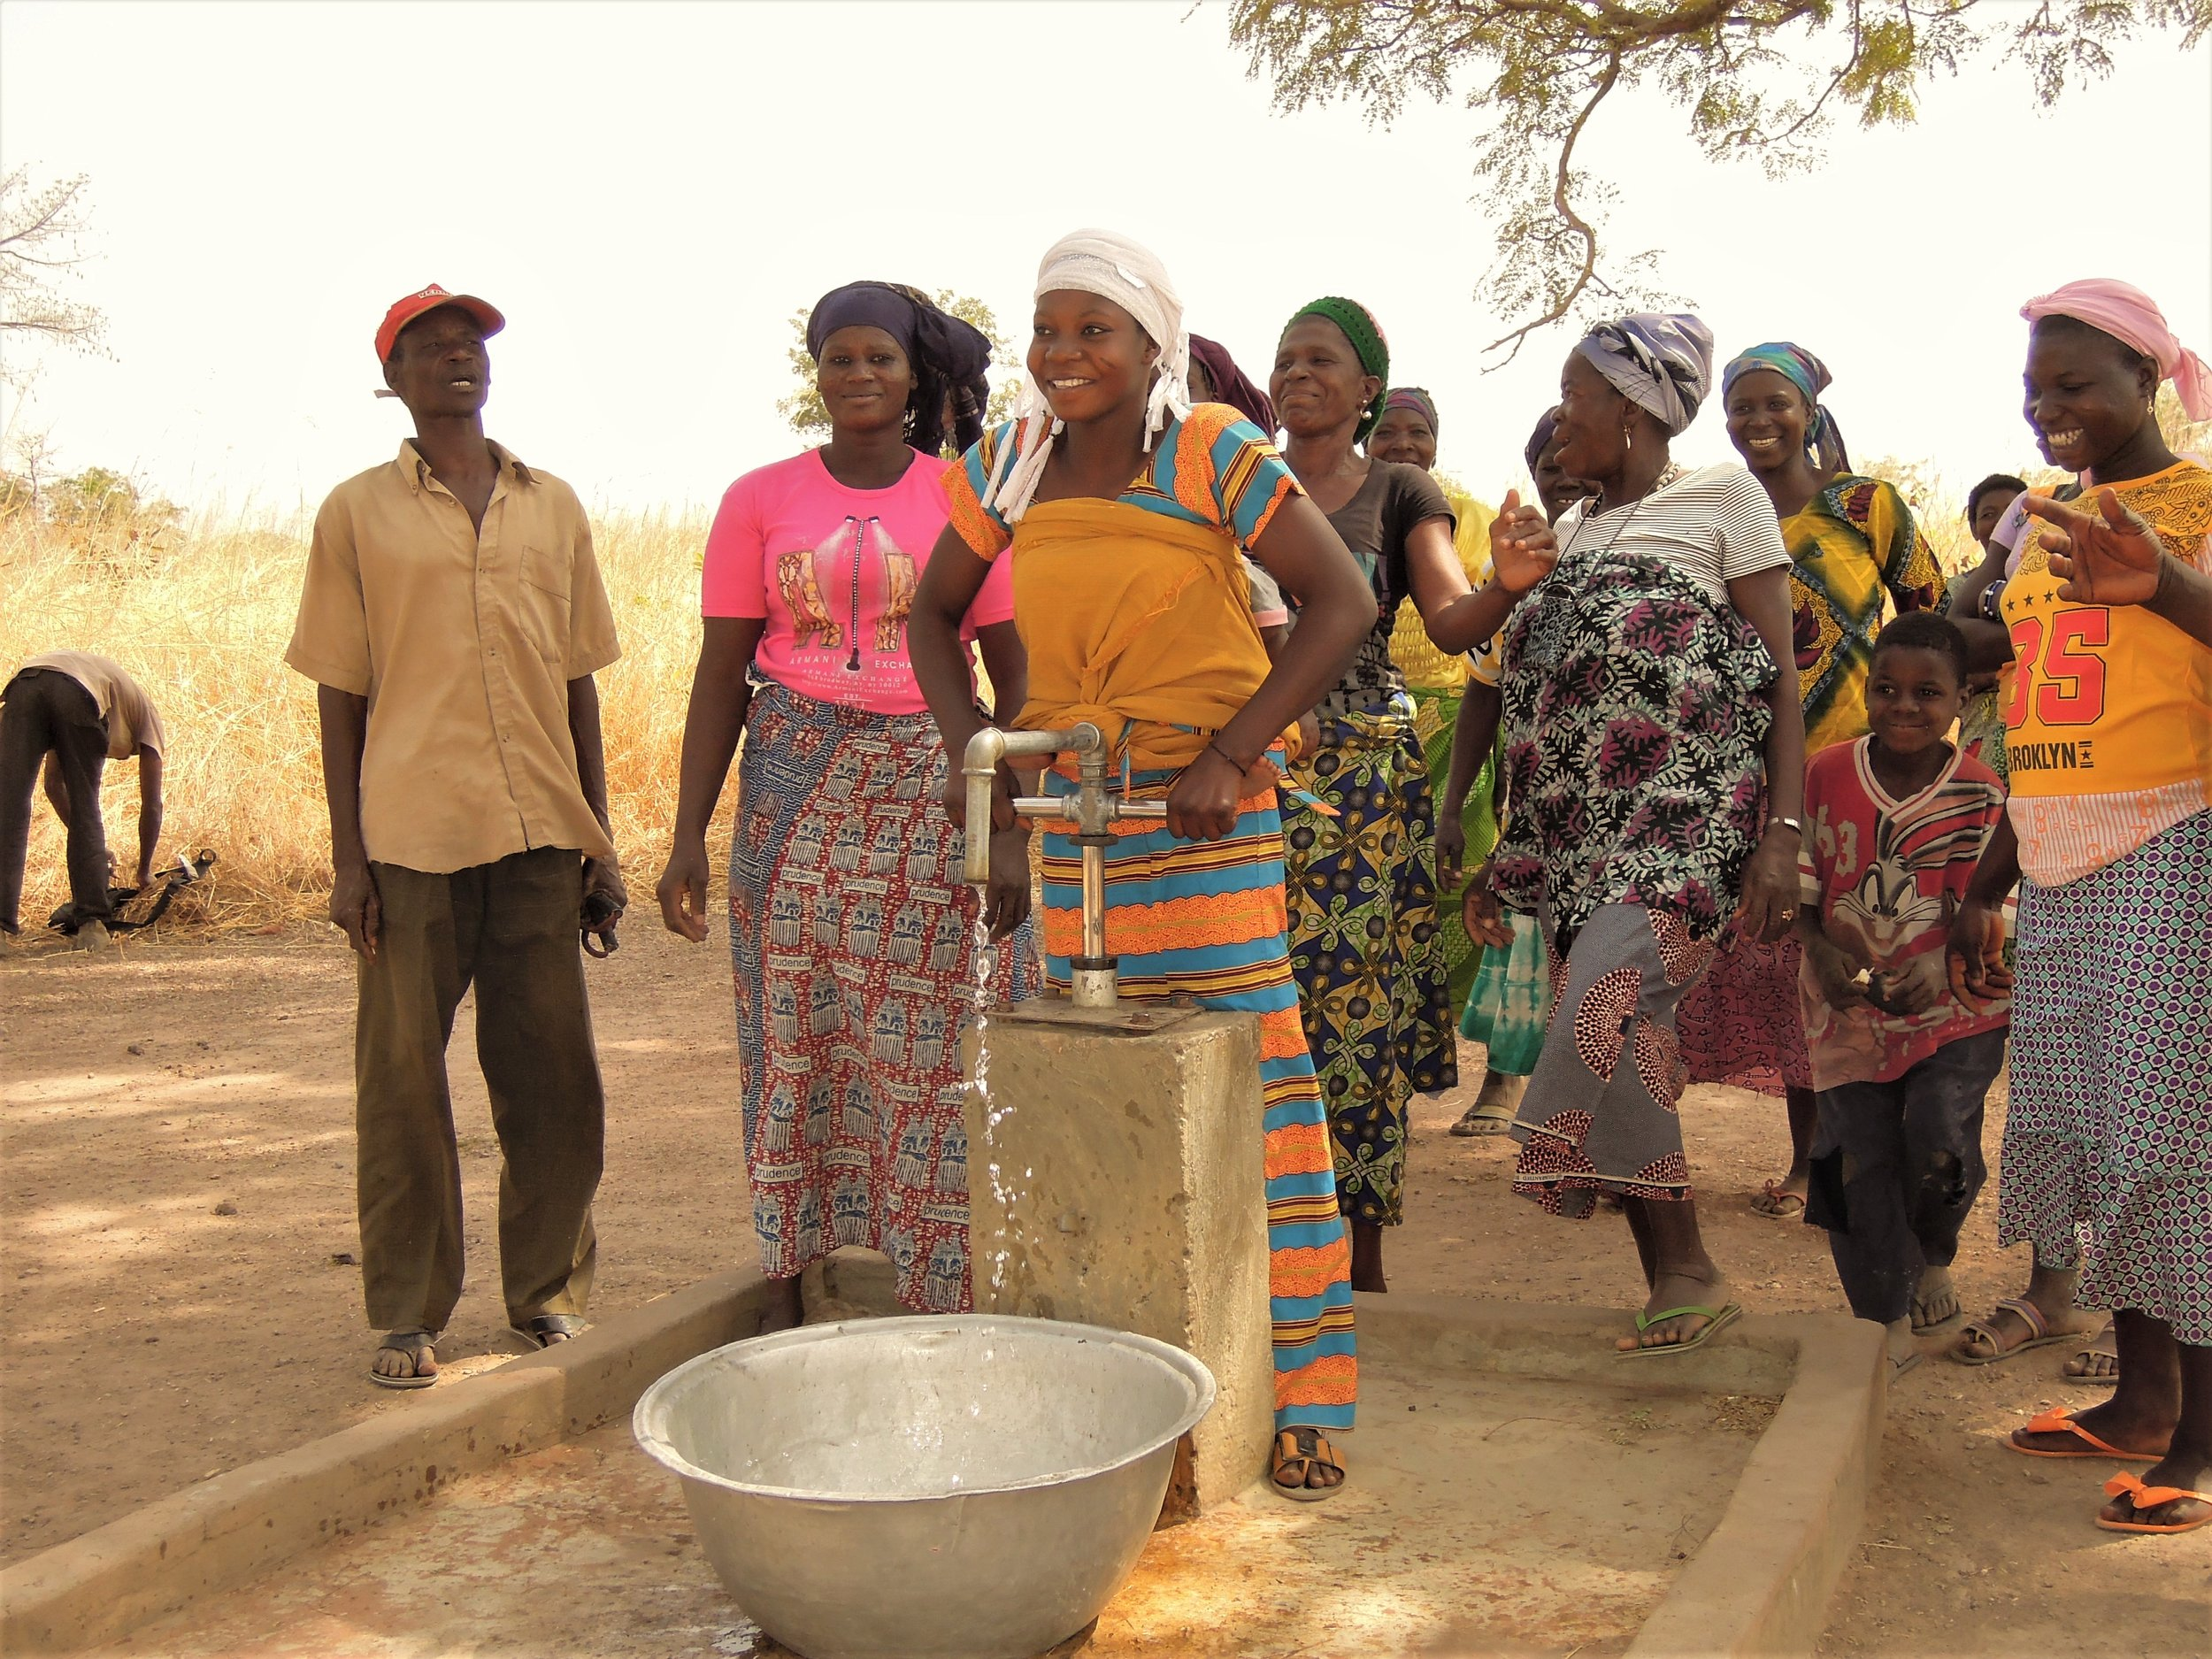 Women in Palabre 1 celebrate the new well.